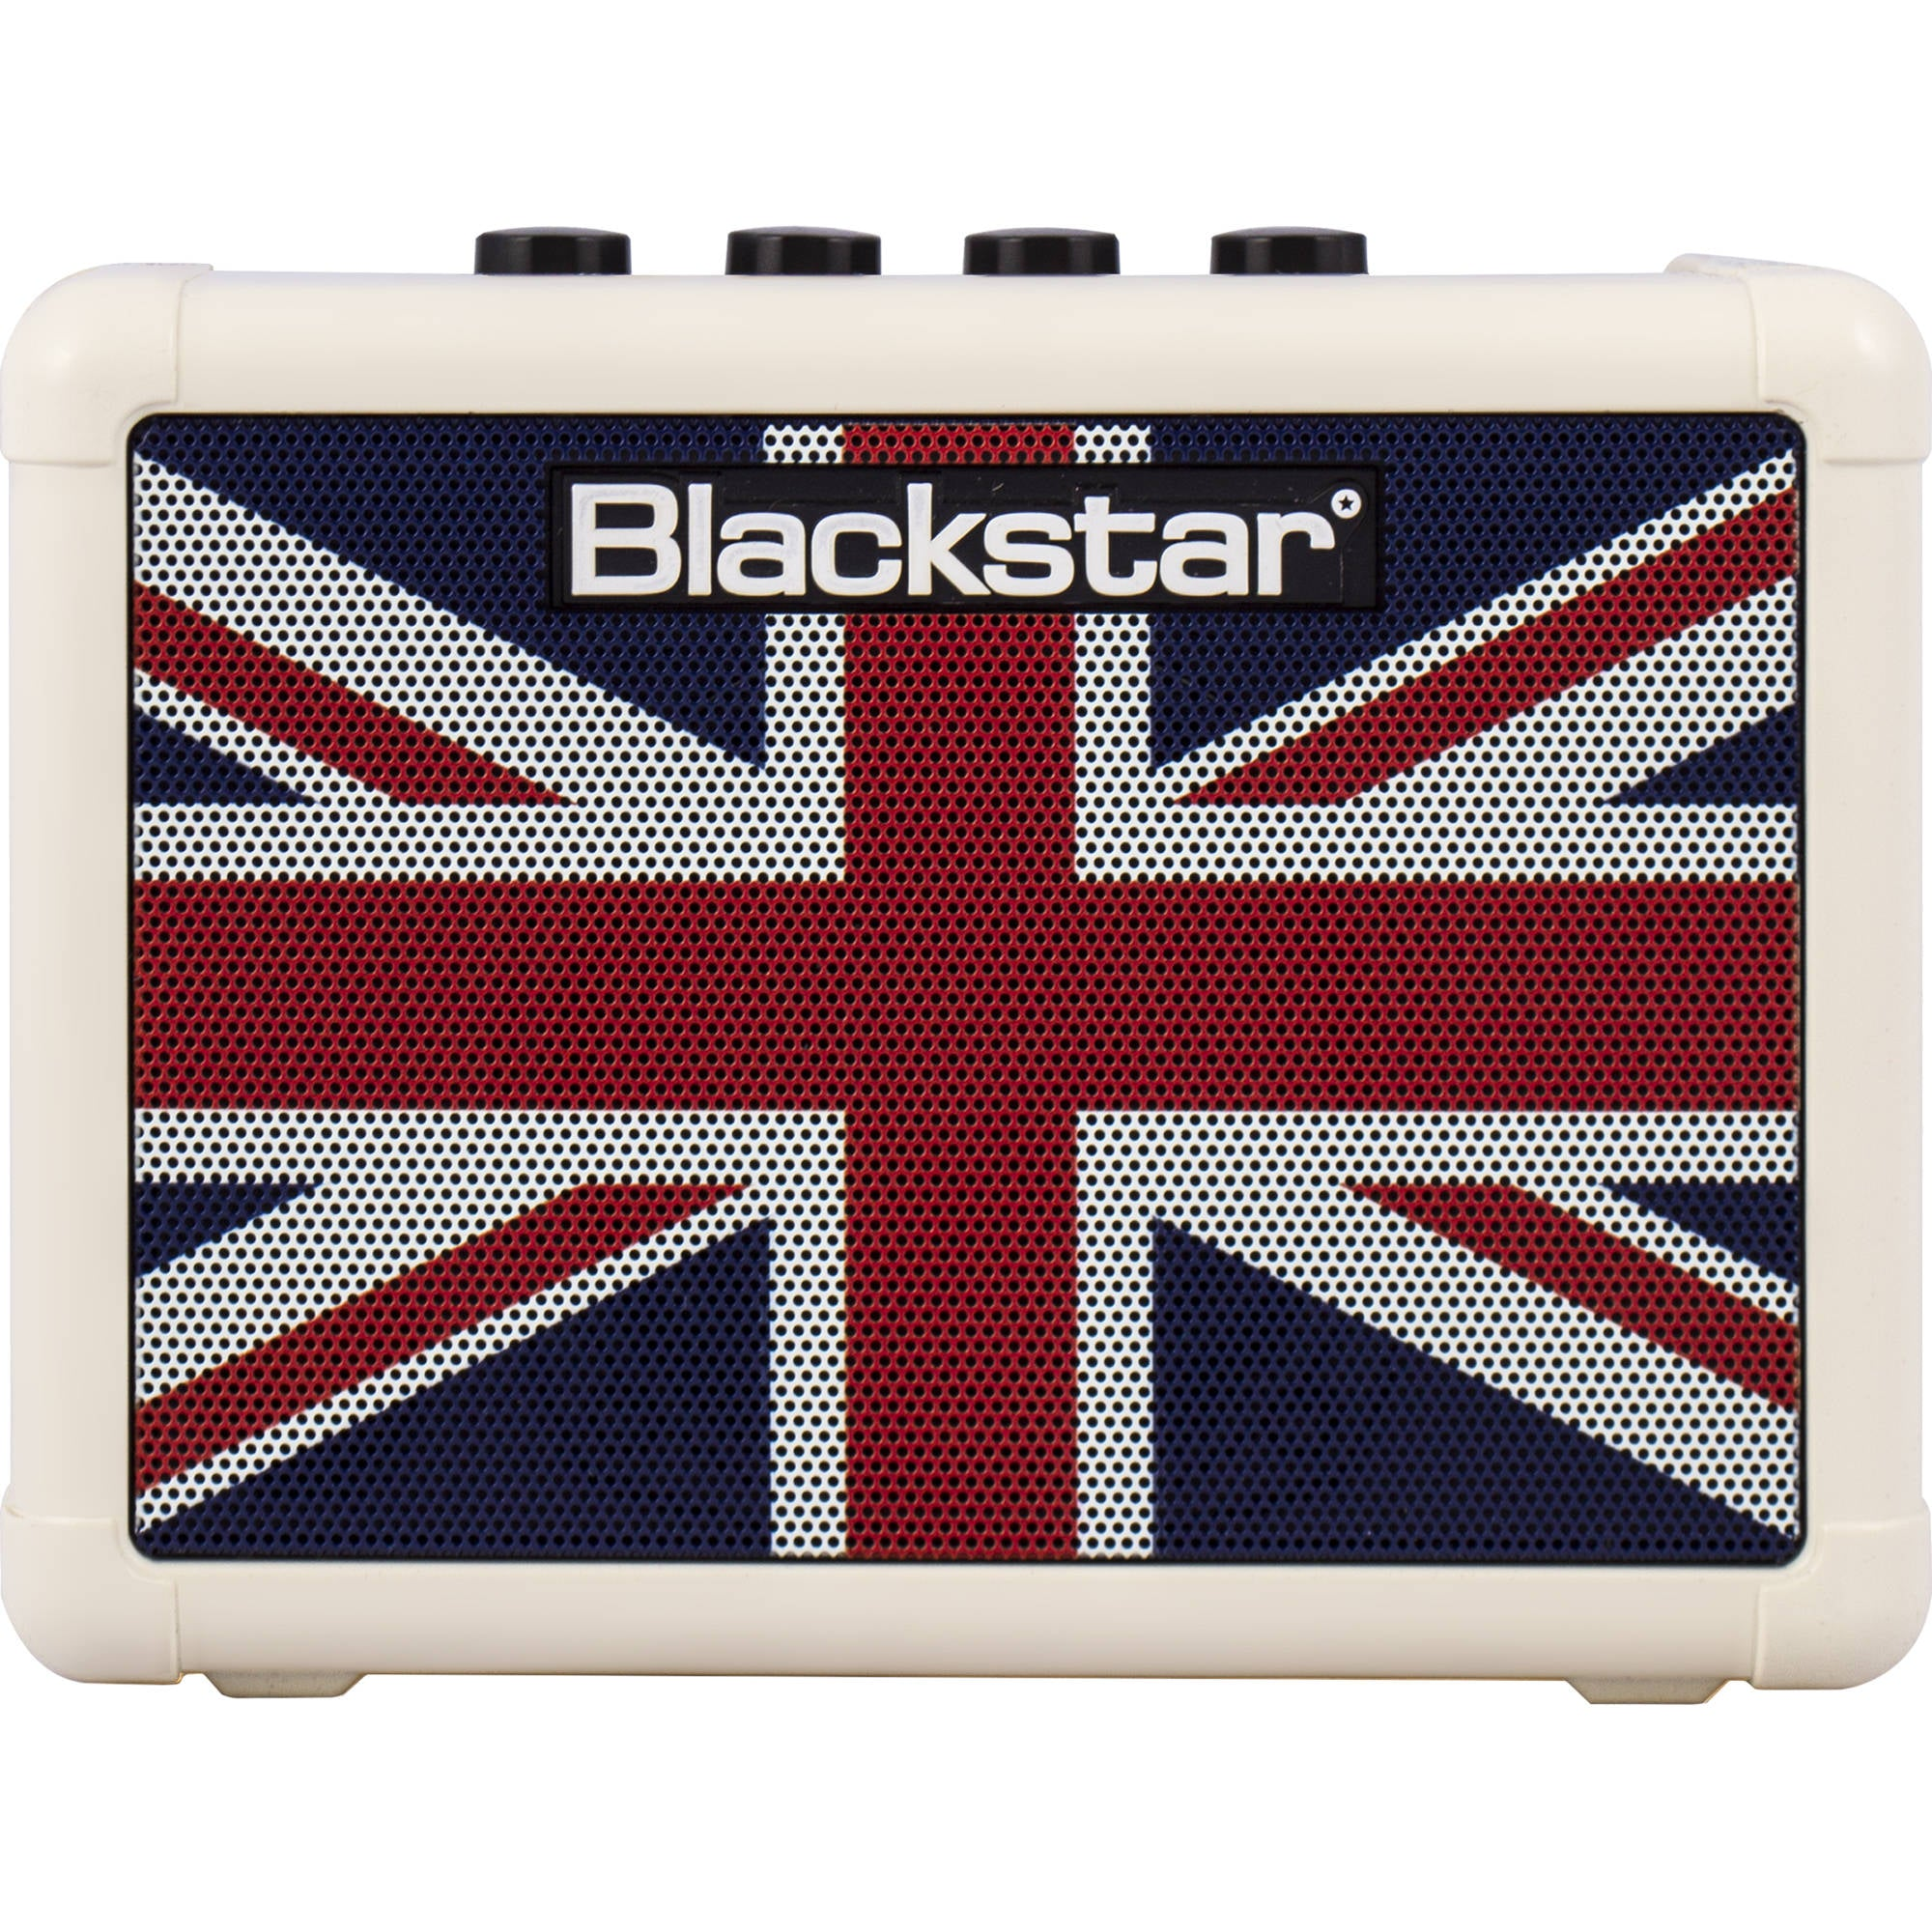 "Blackstar FLY 3 Union Flag - 3-watt 1x3"" Combo Amp 